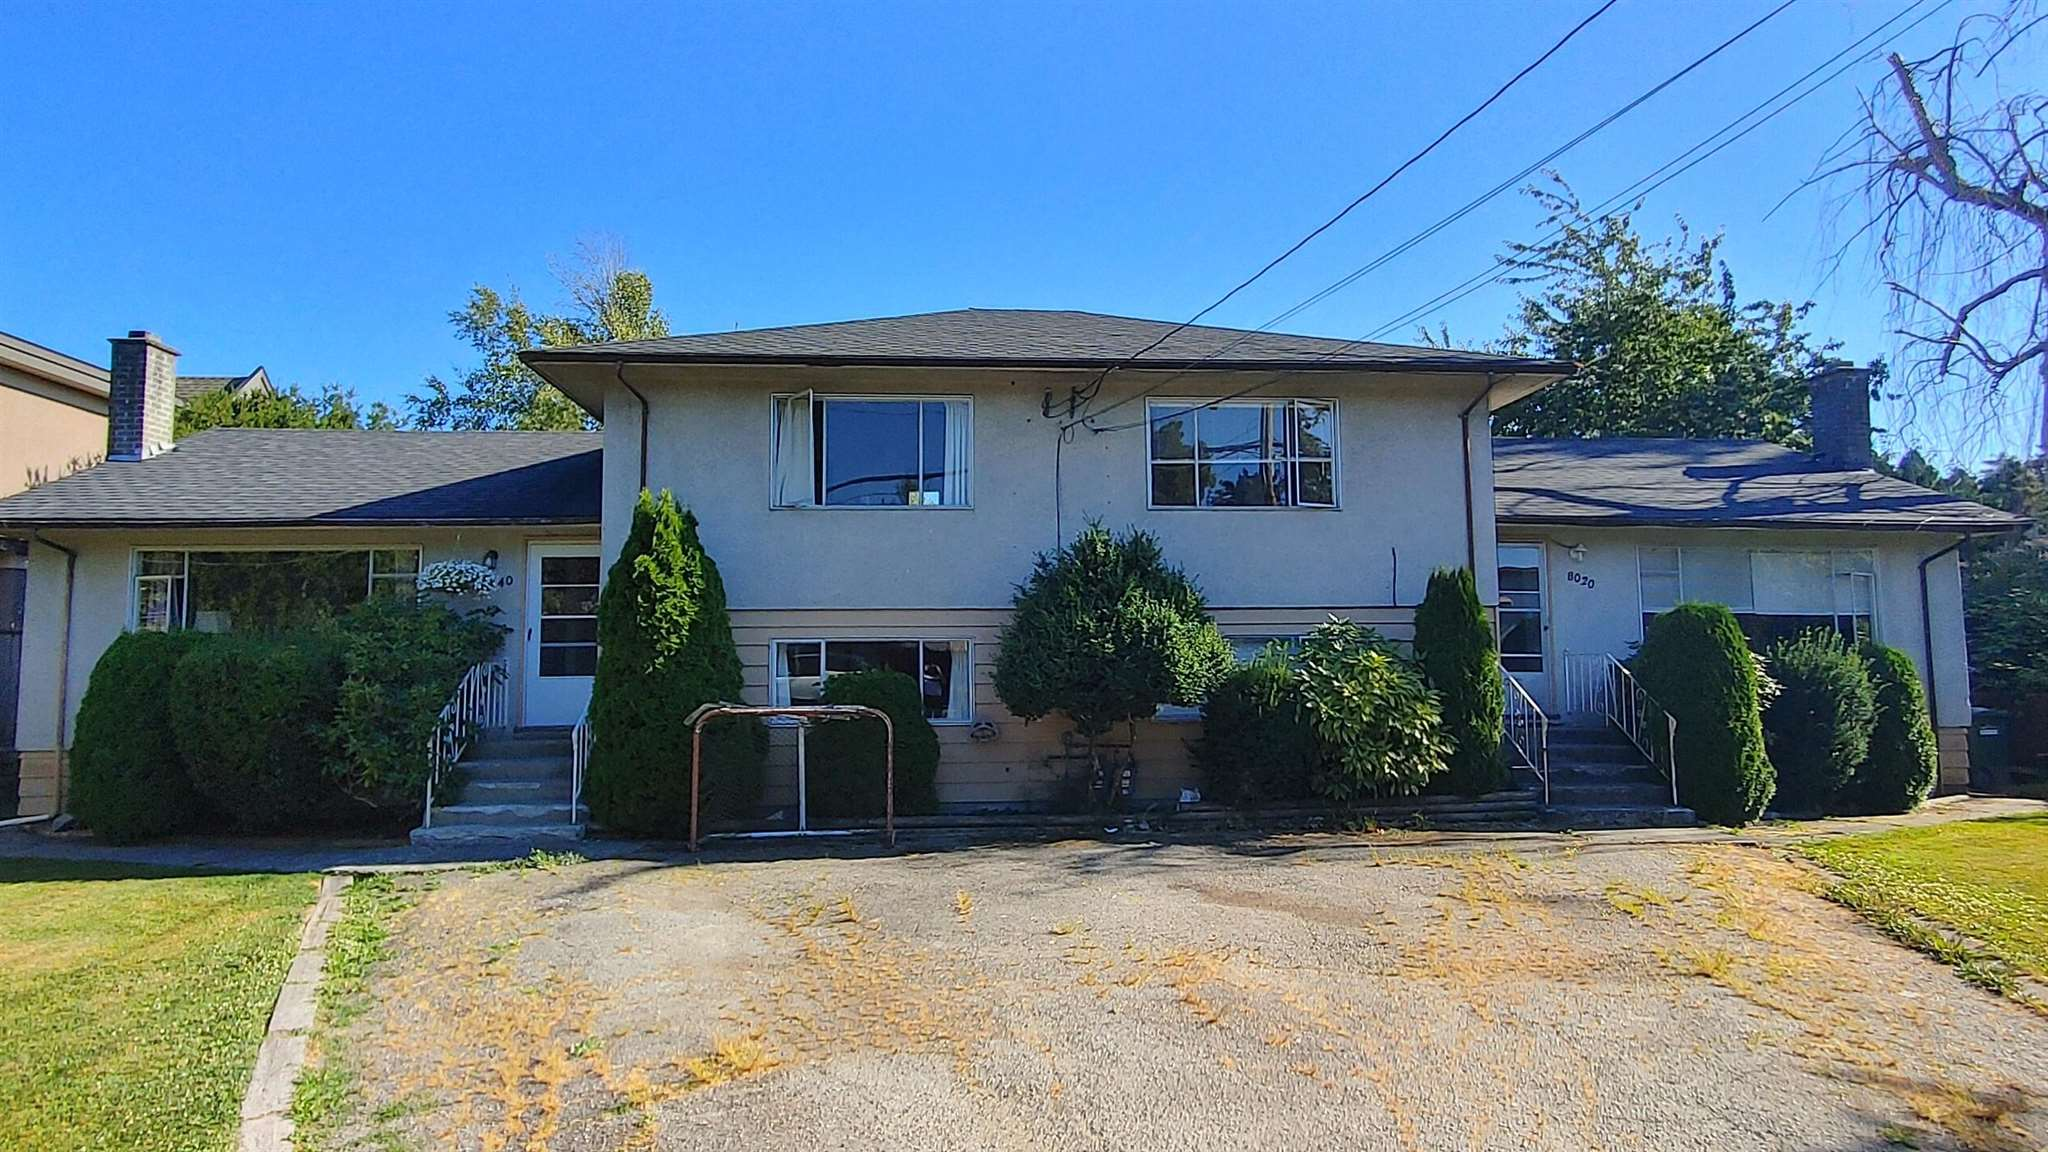 Fantastic duplex that sits on a large, private subdividable 93x132 SF lot (total 12,263 SF lot) with great north / south exposures.  The side x side duplexes each have approx 1400 SF, 2 bdrms and 1 full bath upstairs, 3rd bedroom / large rec room downstairs, separate laundry facilities and a huge south facing backyard.   Great property to enjoy one or both sides, to hold as an investment property or to build 2 new dream homes of 3089 SF which does not include the garage.  All this in a nice family-oriented neighbourhood that?s centrally located close to buses, shopping, Garden City Elementary, Palmer Secondary & Garden City Shopping Mall.